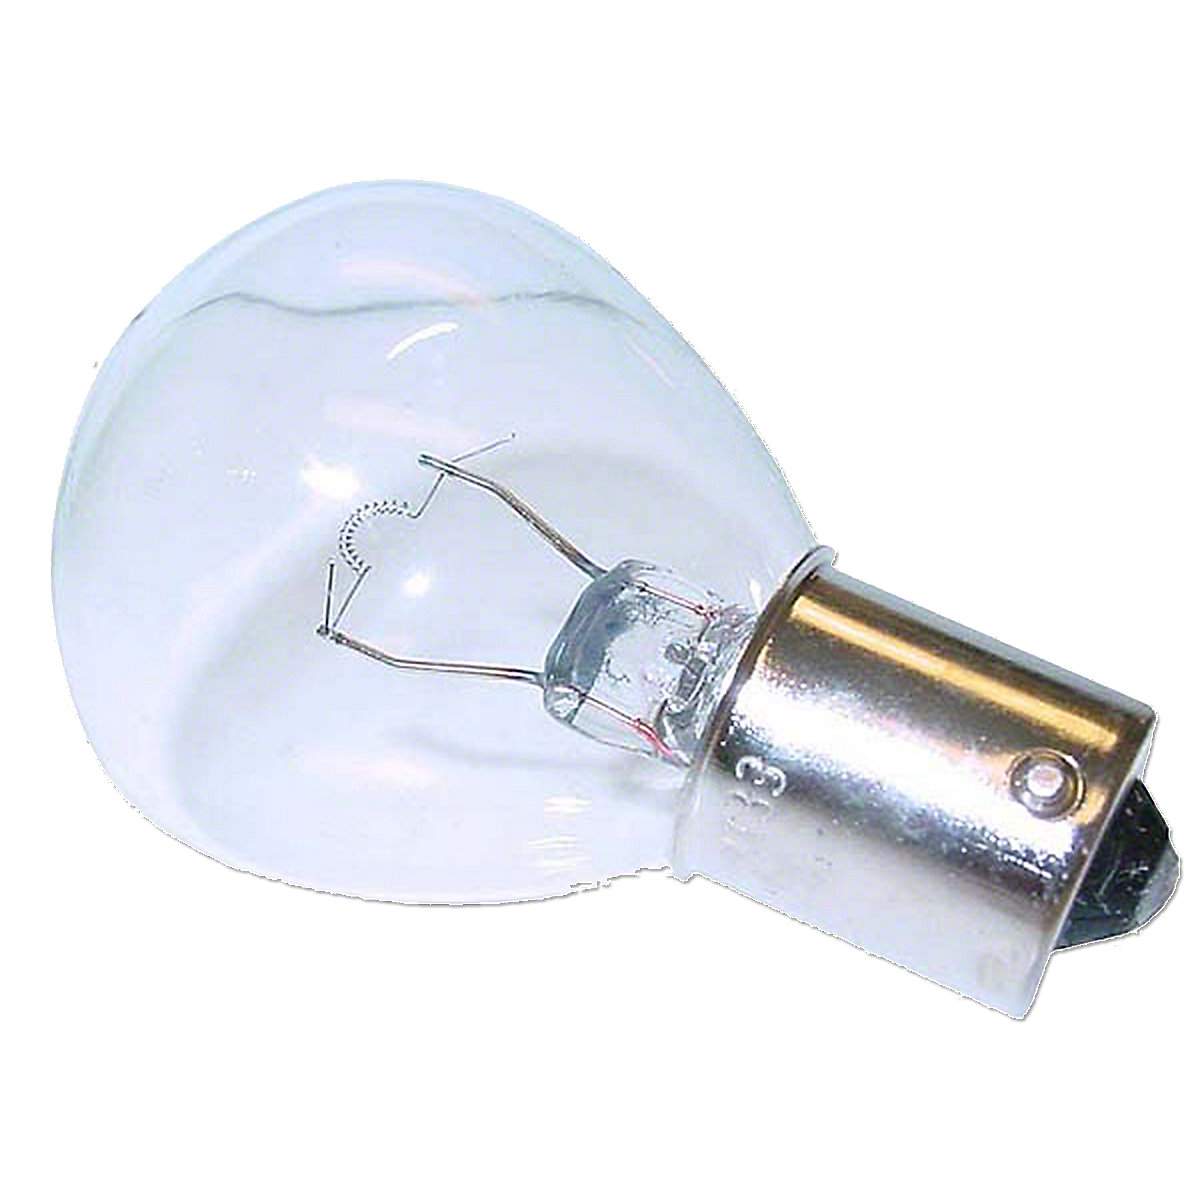 Tractor Headlight Bulb Sizes : Ihs light bulb volt